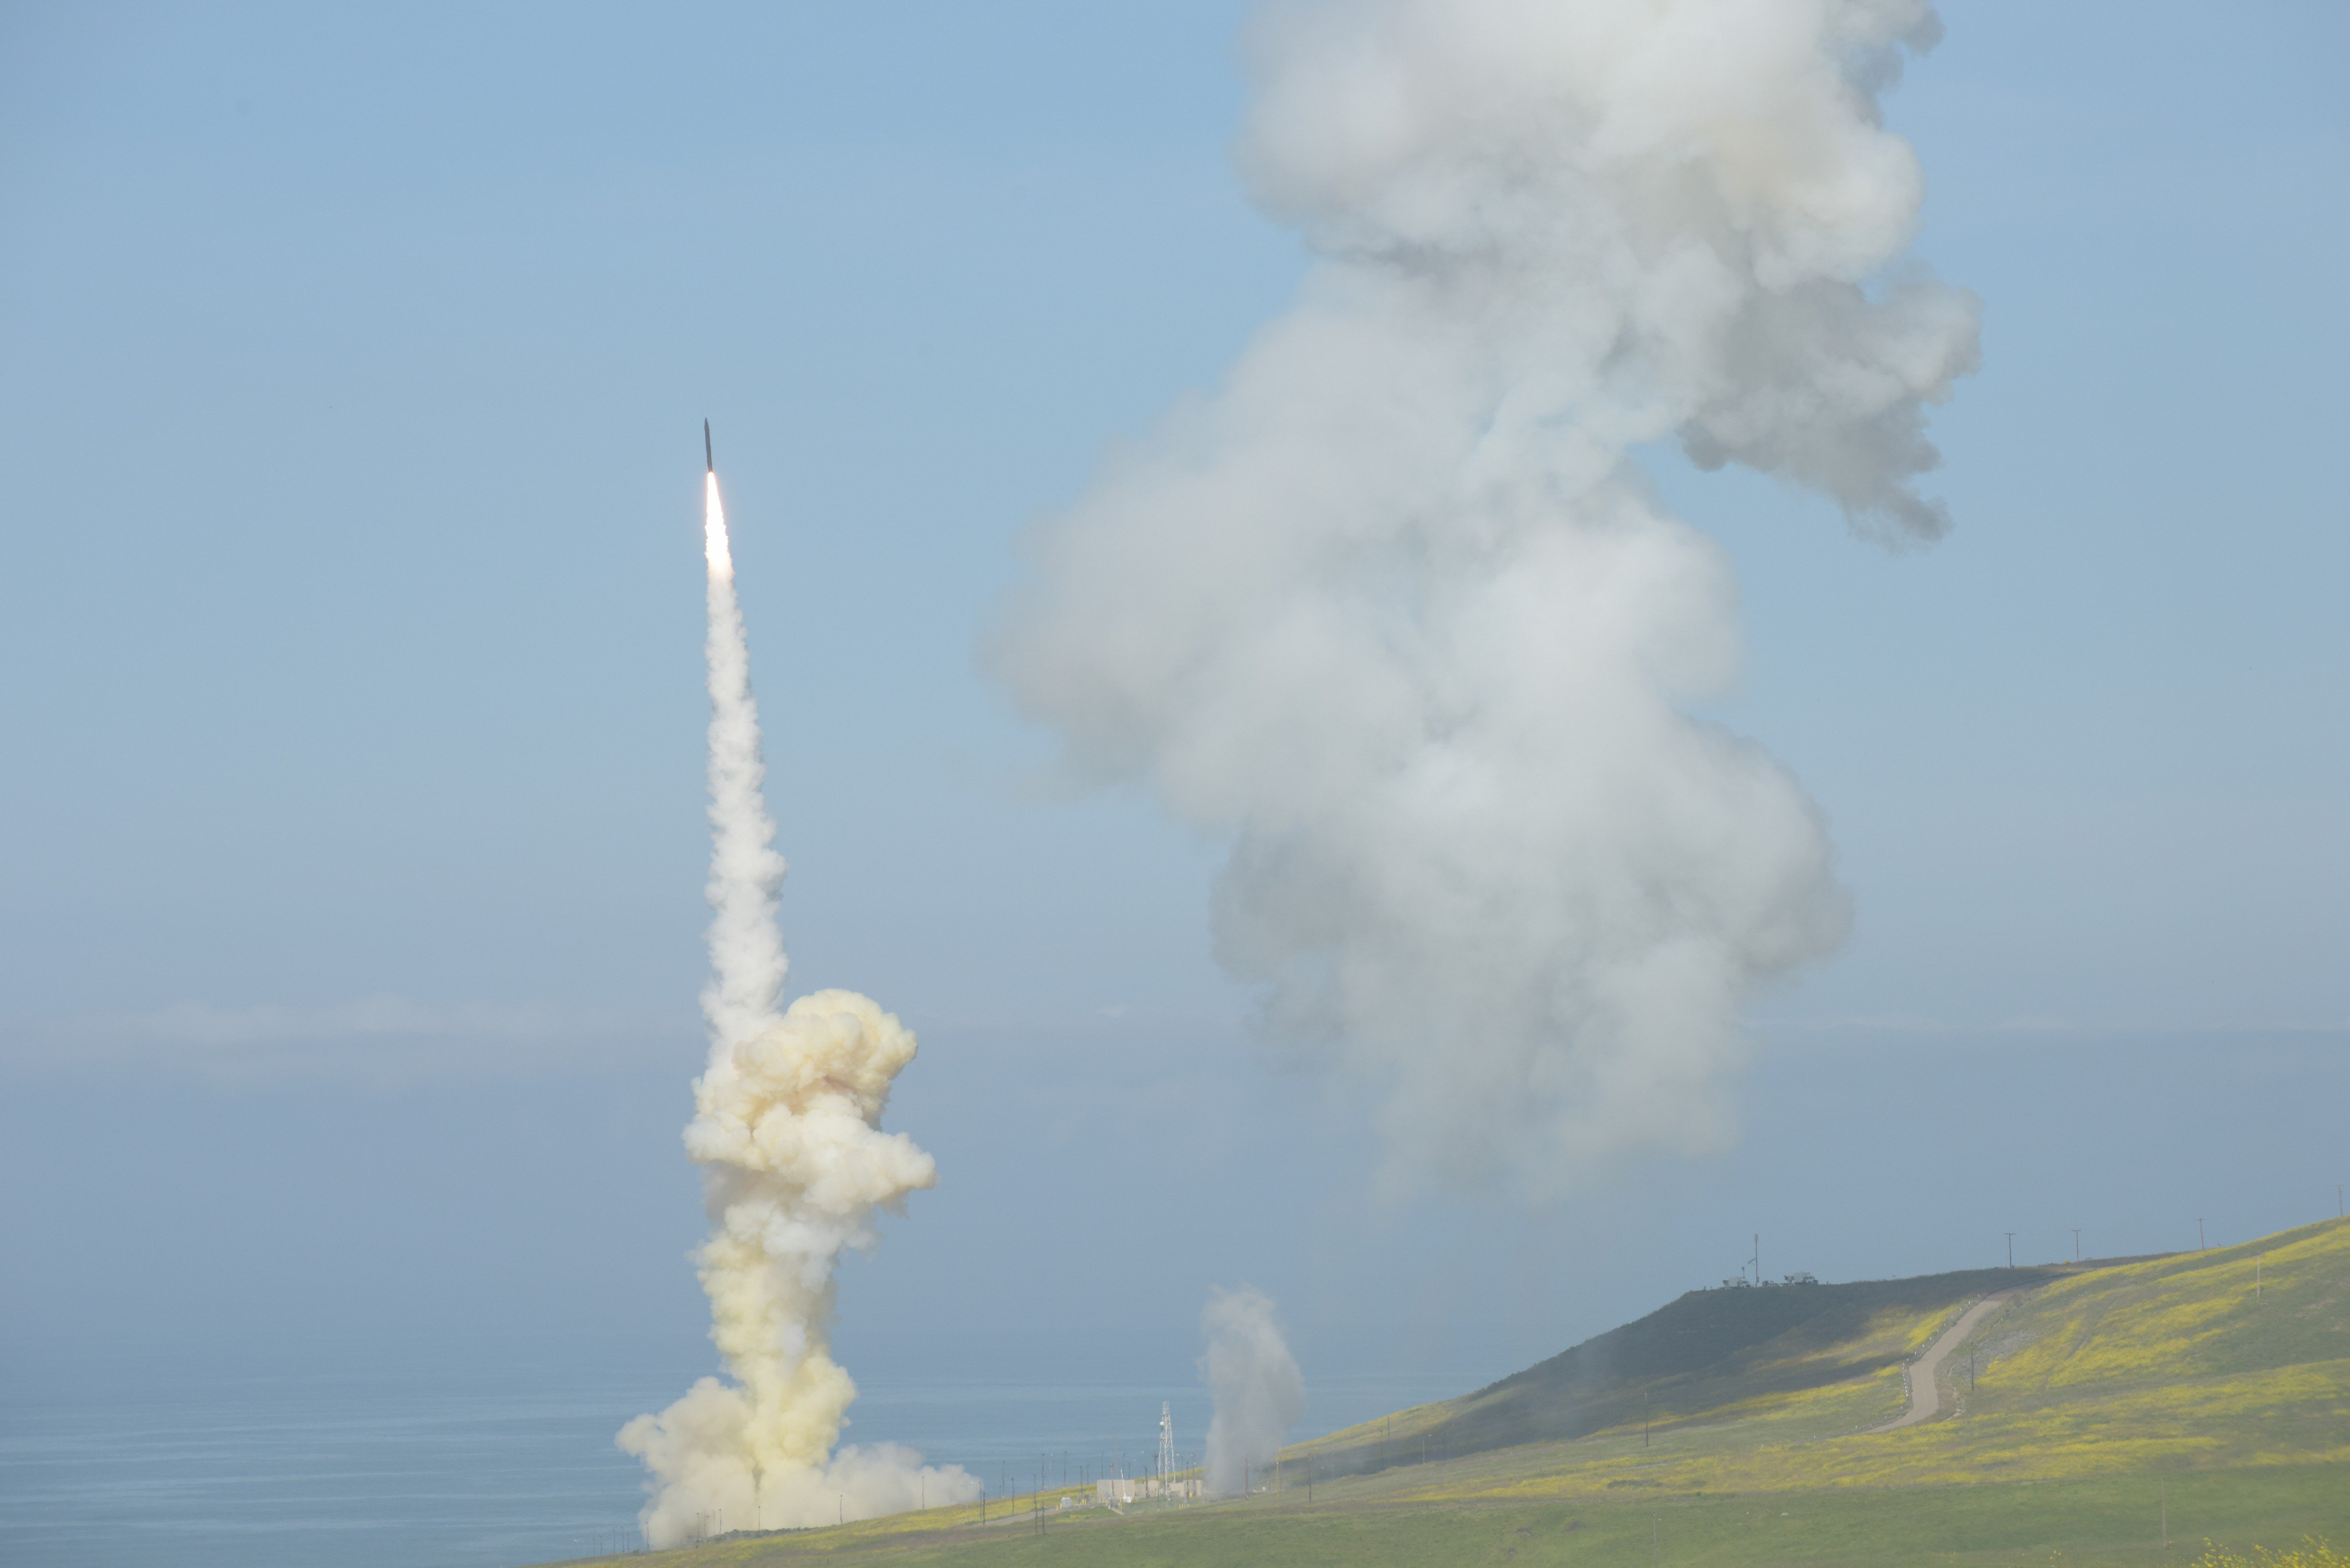 The 'trail' Ground-based Interceptor is launched from Vandenberg Air Force Base, Calif., March 25, 2019, in the first-ever salvo engagement test of a threat-representative ICBM target. The two GBIs successfully intercepted a target launched from the Ronald Reagan Ballistic Missile Defense Test Site on Kwajalein Atoll.